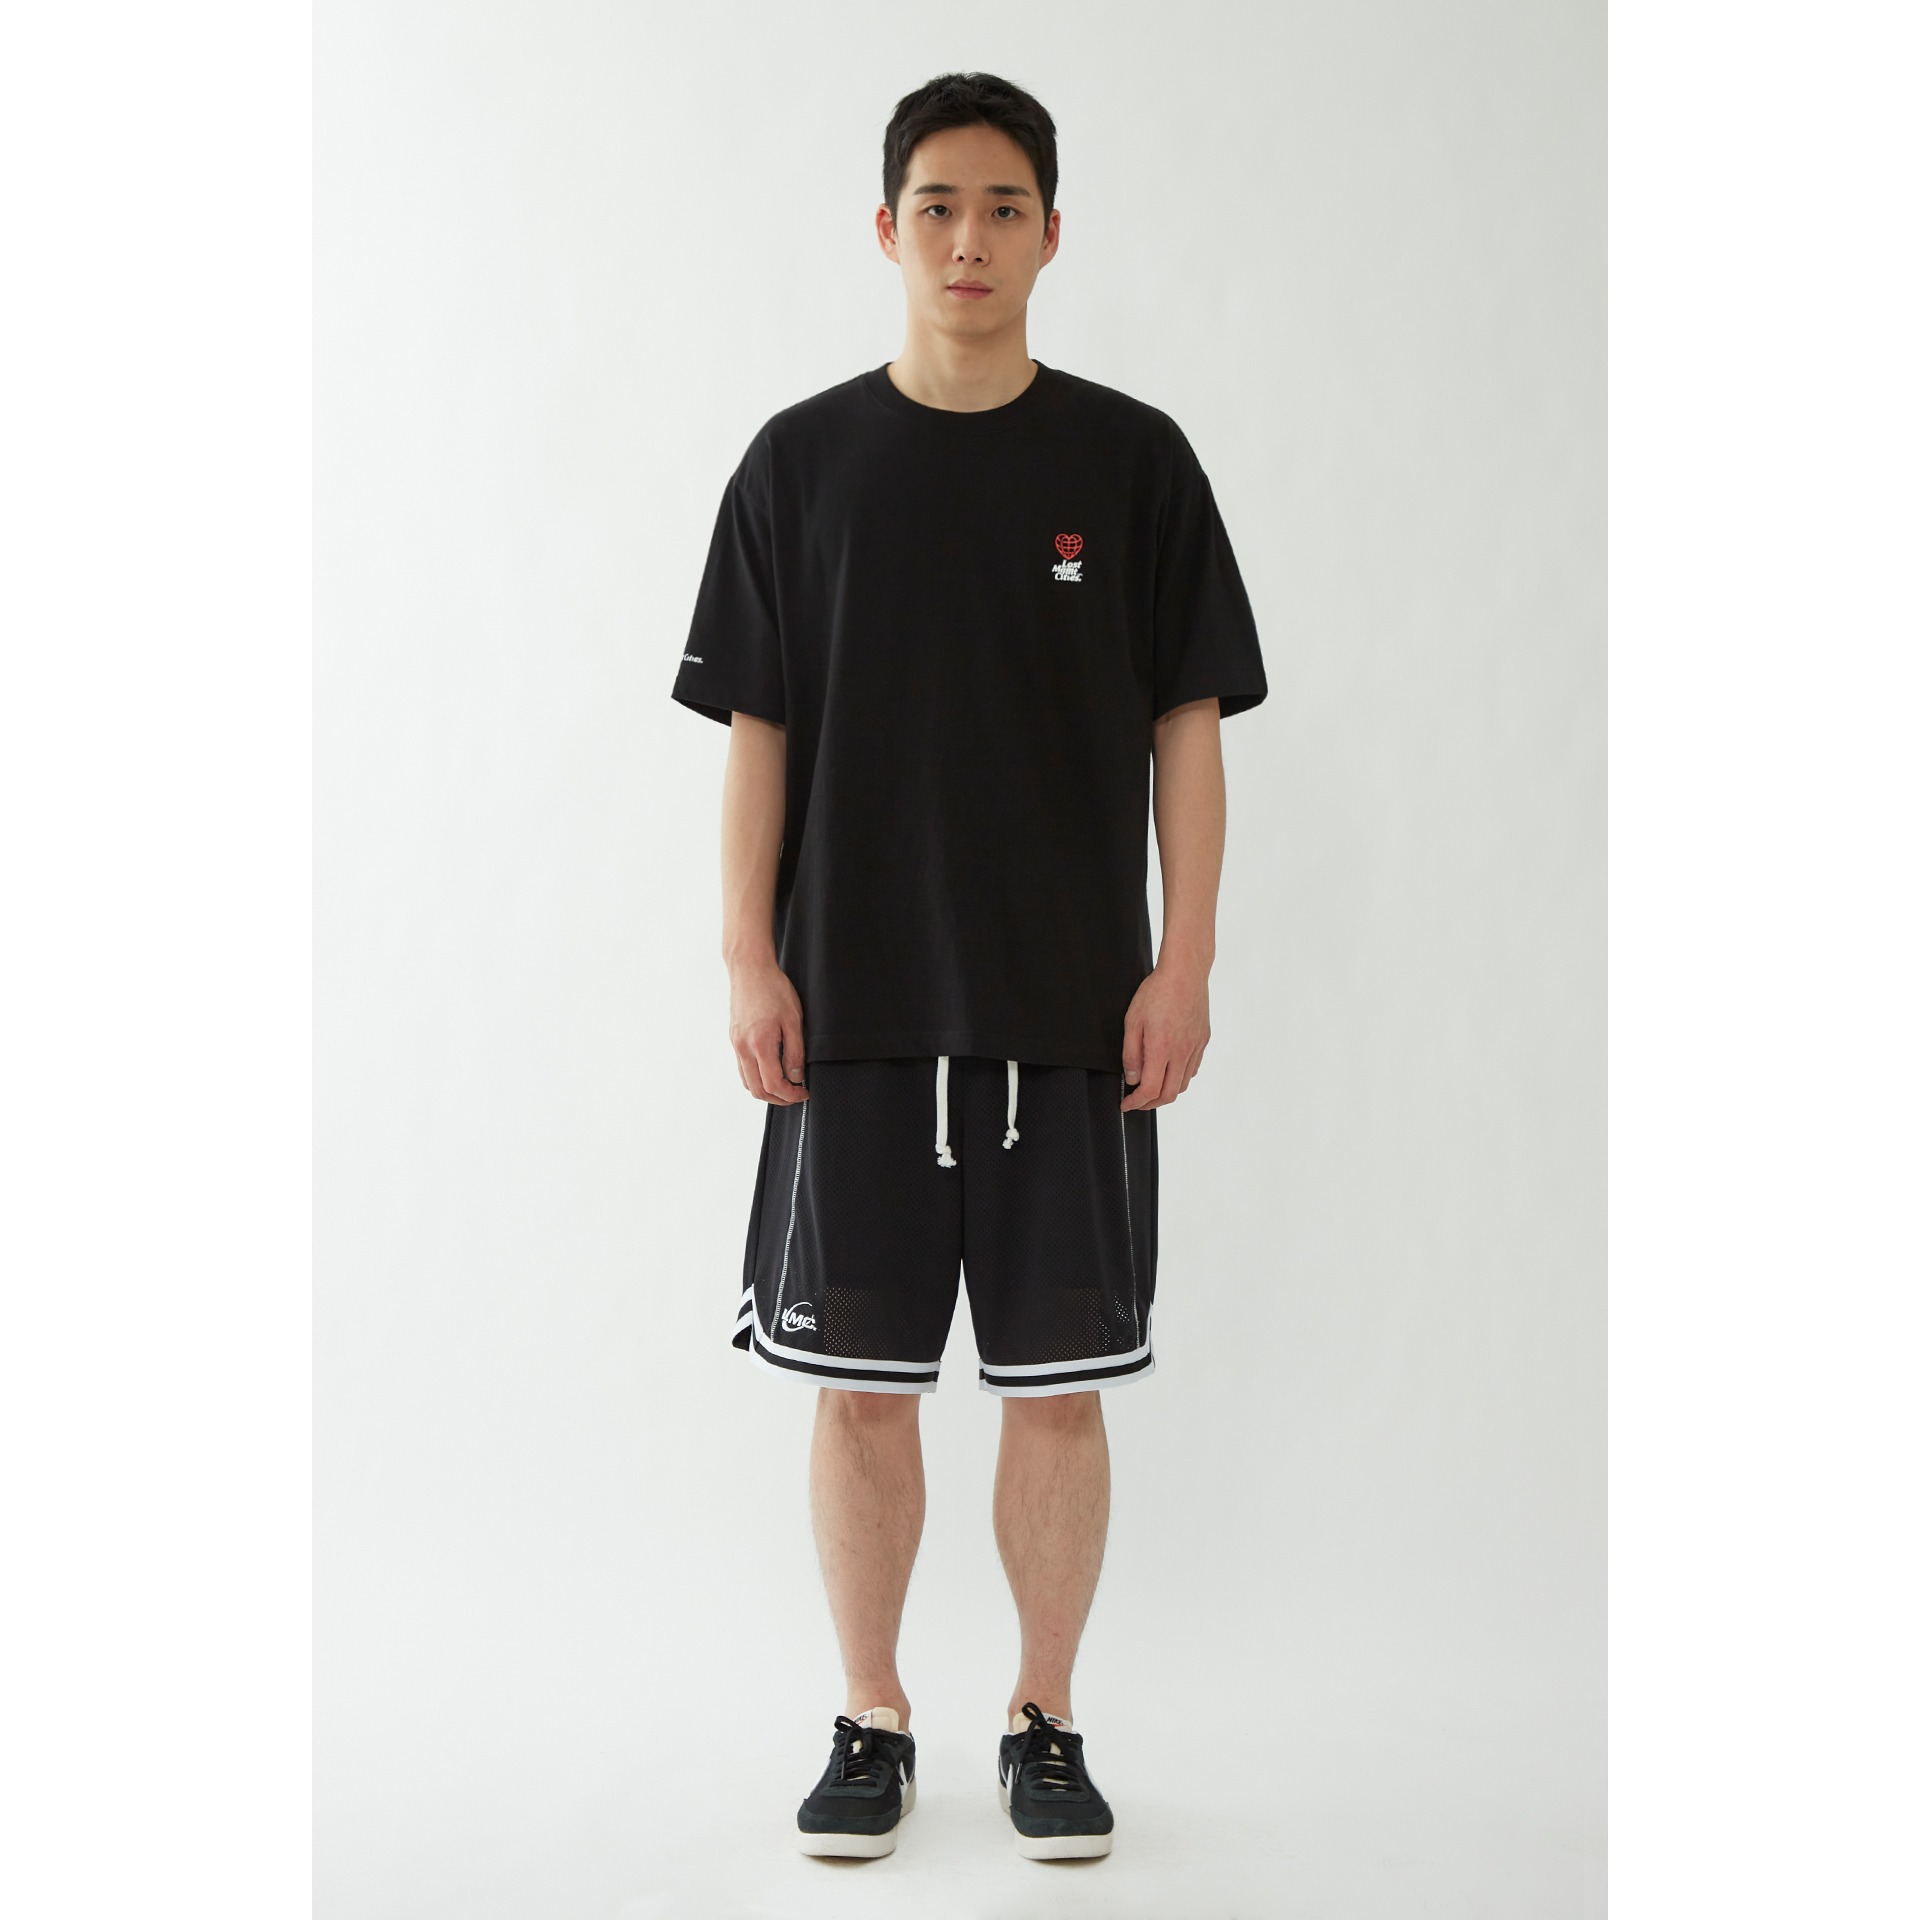 LMC MINI HEART GLOBE TEE black